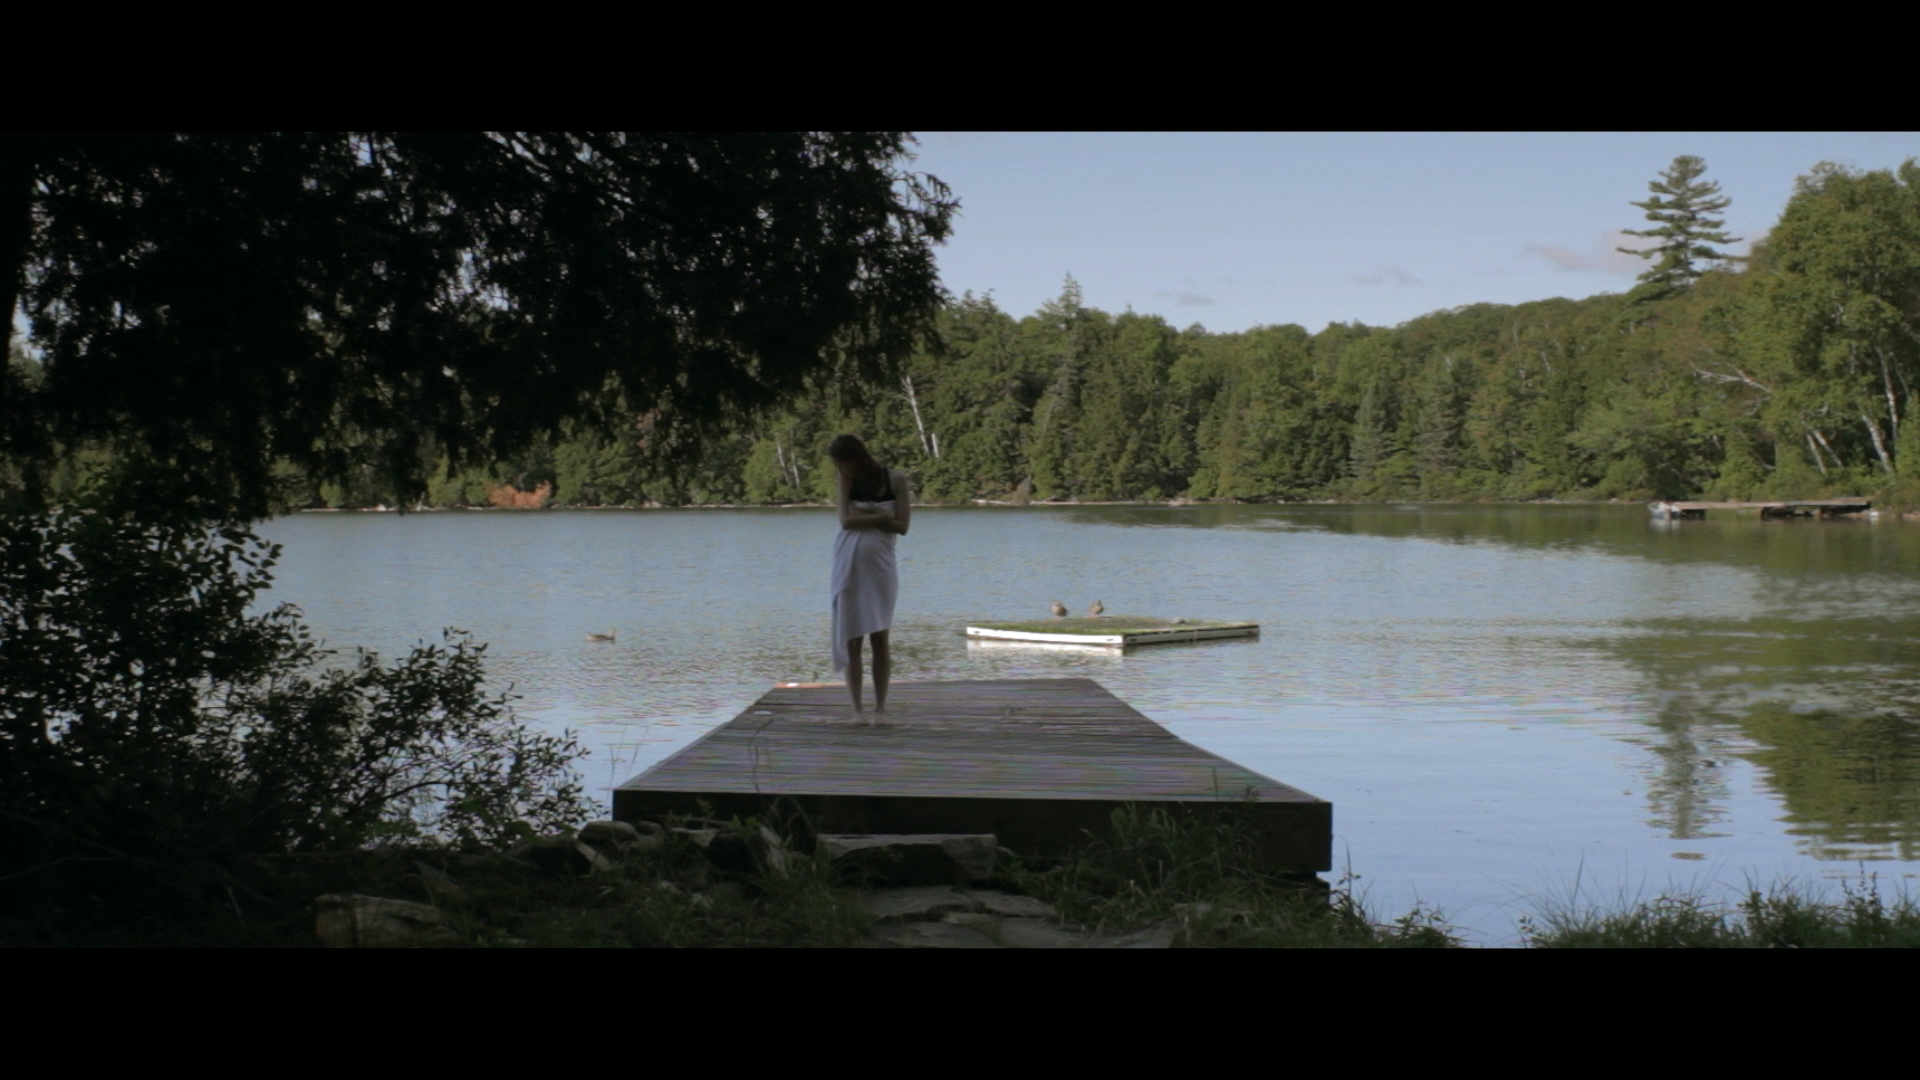 THE WATER'S FINE (2013)